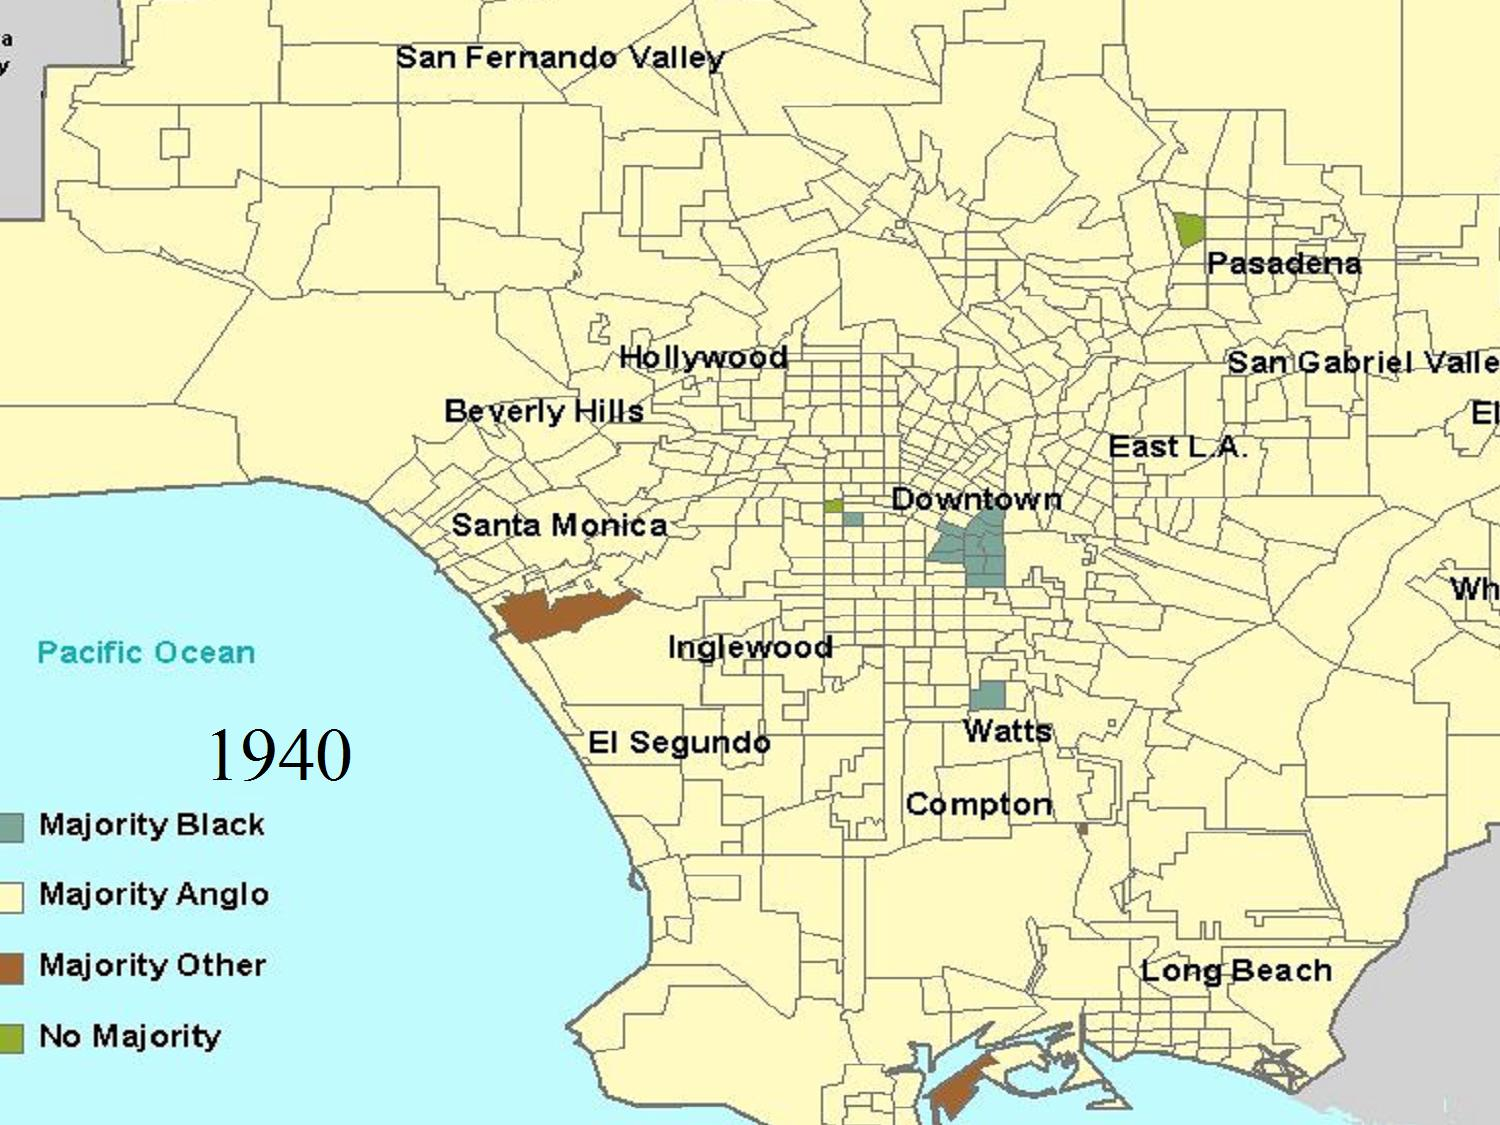 Los Angeles County RacialEthnic Breakdown - Los angeles county line map